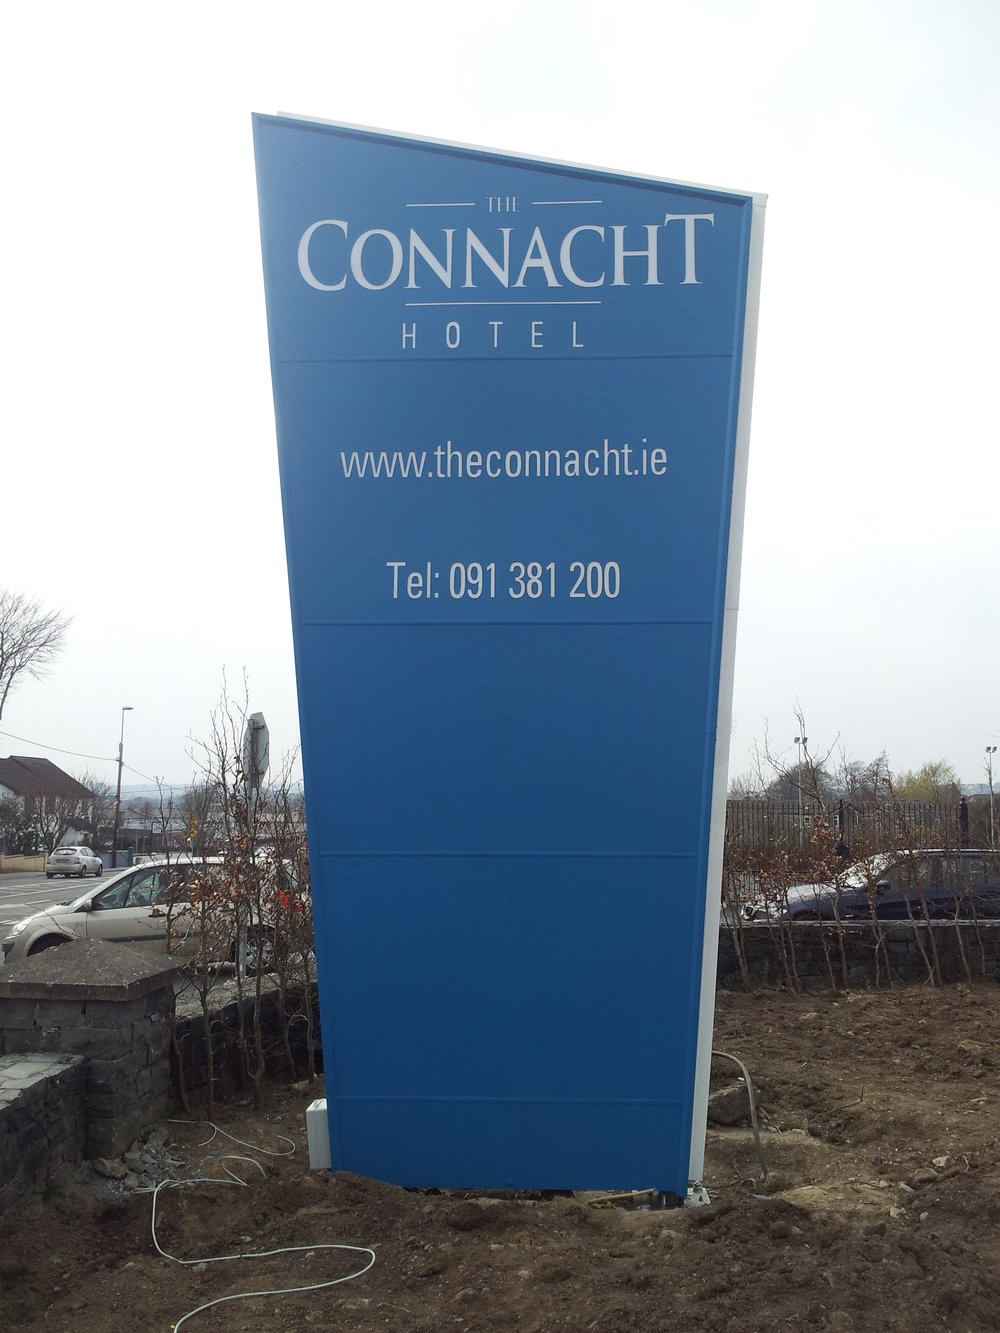 The Connacht Hotel, Galway